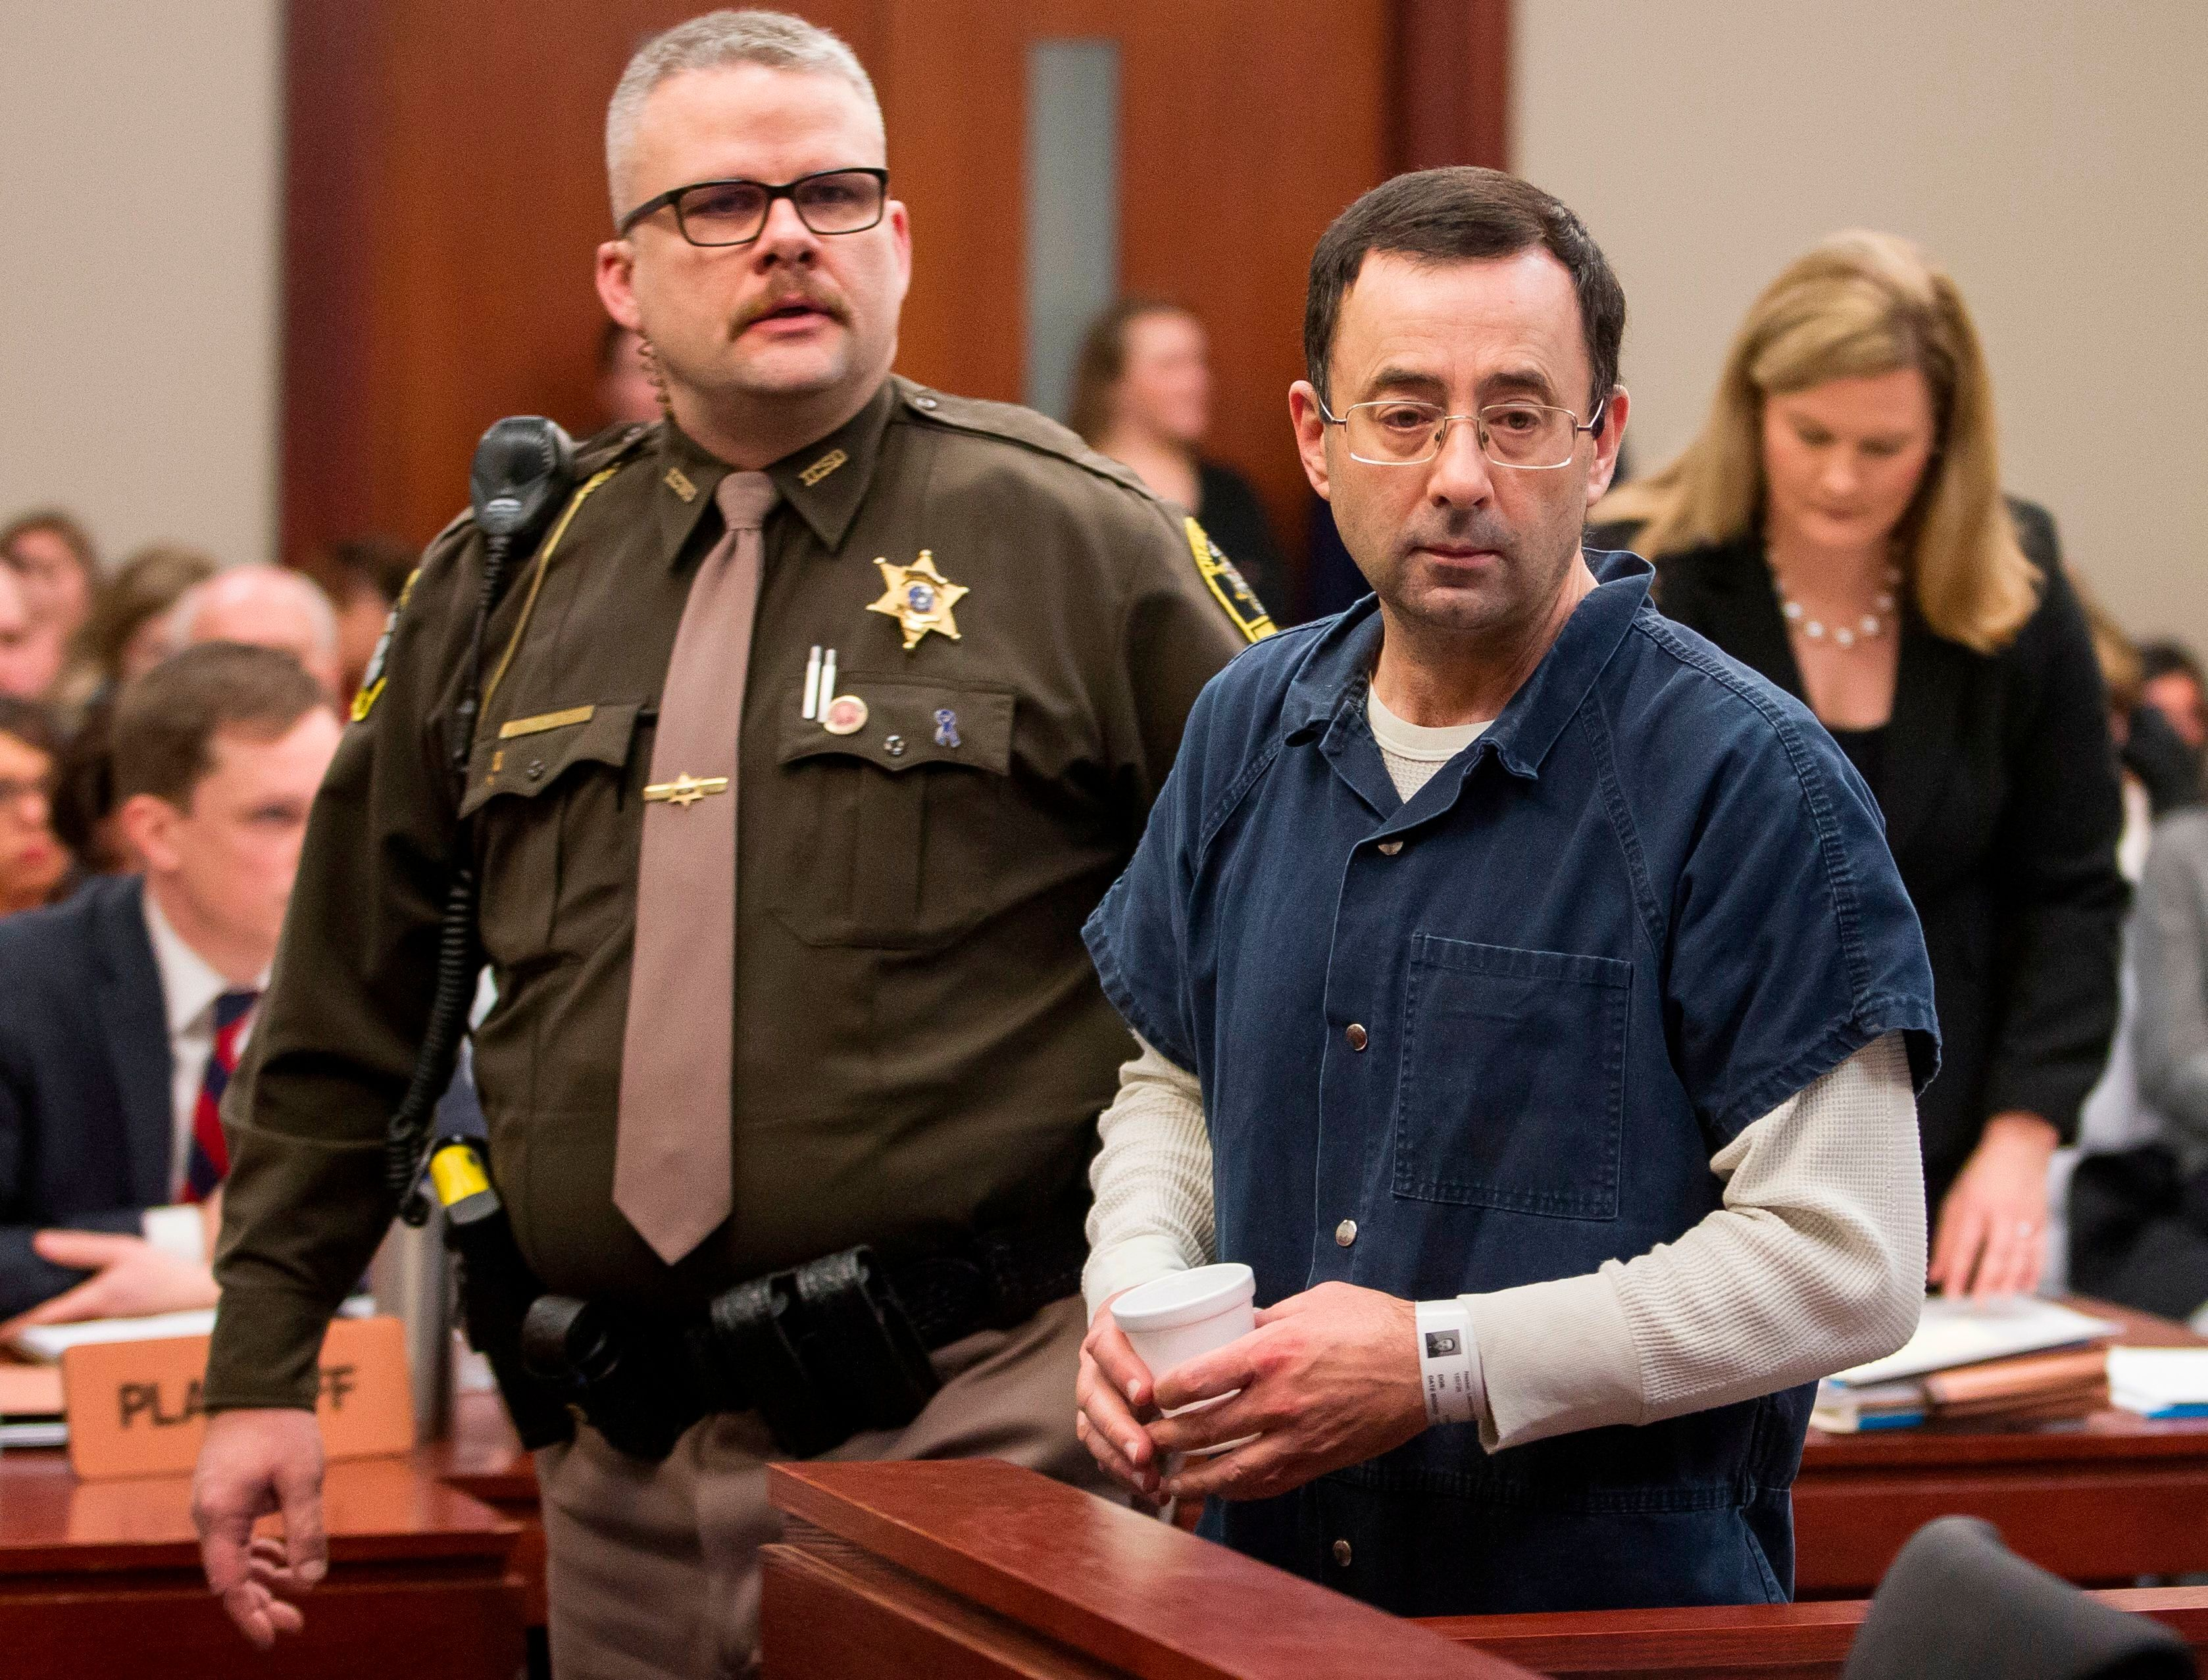 Dr. Larry Nassar is led to the witness box during his sentencing hearing in Lansing, Michigan, January 16, 2018. The former Team USA gymnastics doctor is convicted of sexual abuse charges.More than 100 athletes have accused Nassar of abuse, including members of the gold medal-winning US Olympic team.  / AFP PHOTO / Geoff Robins        (Photo credit should read GEOFF ROBINS/AFP/Getty Images)